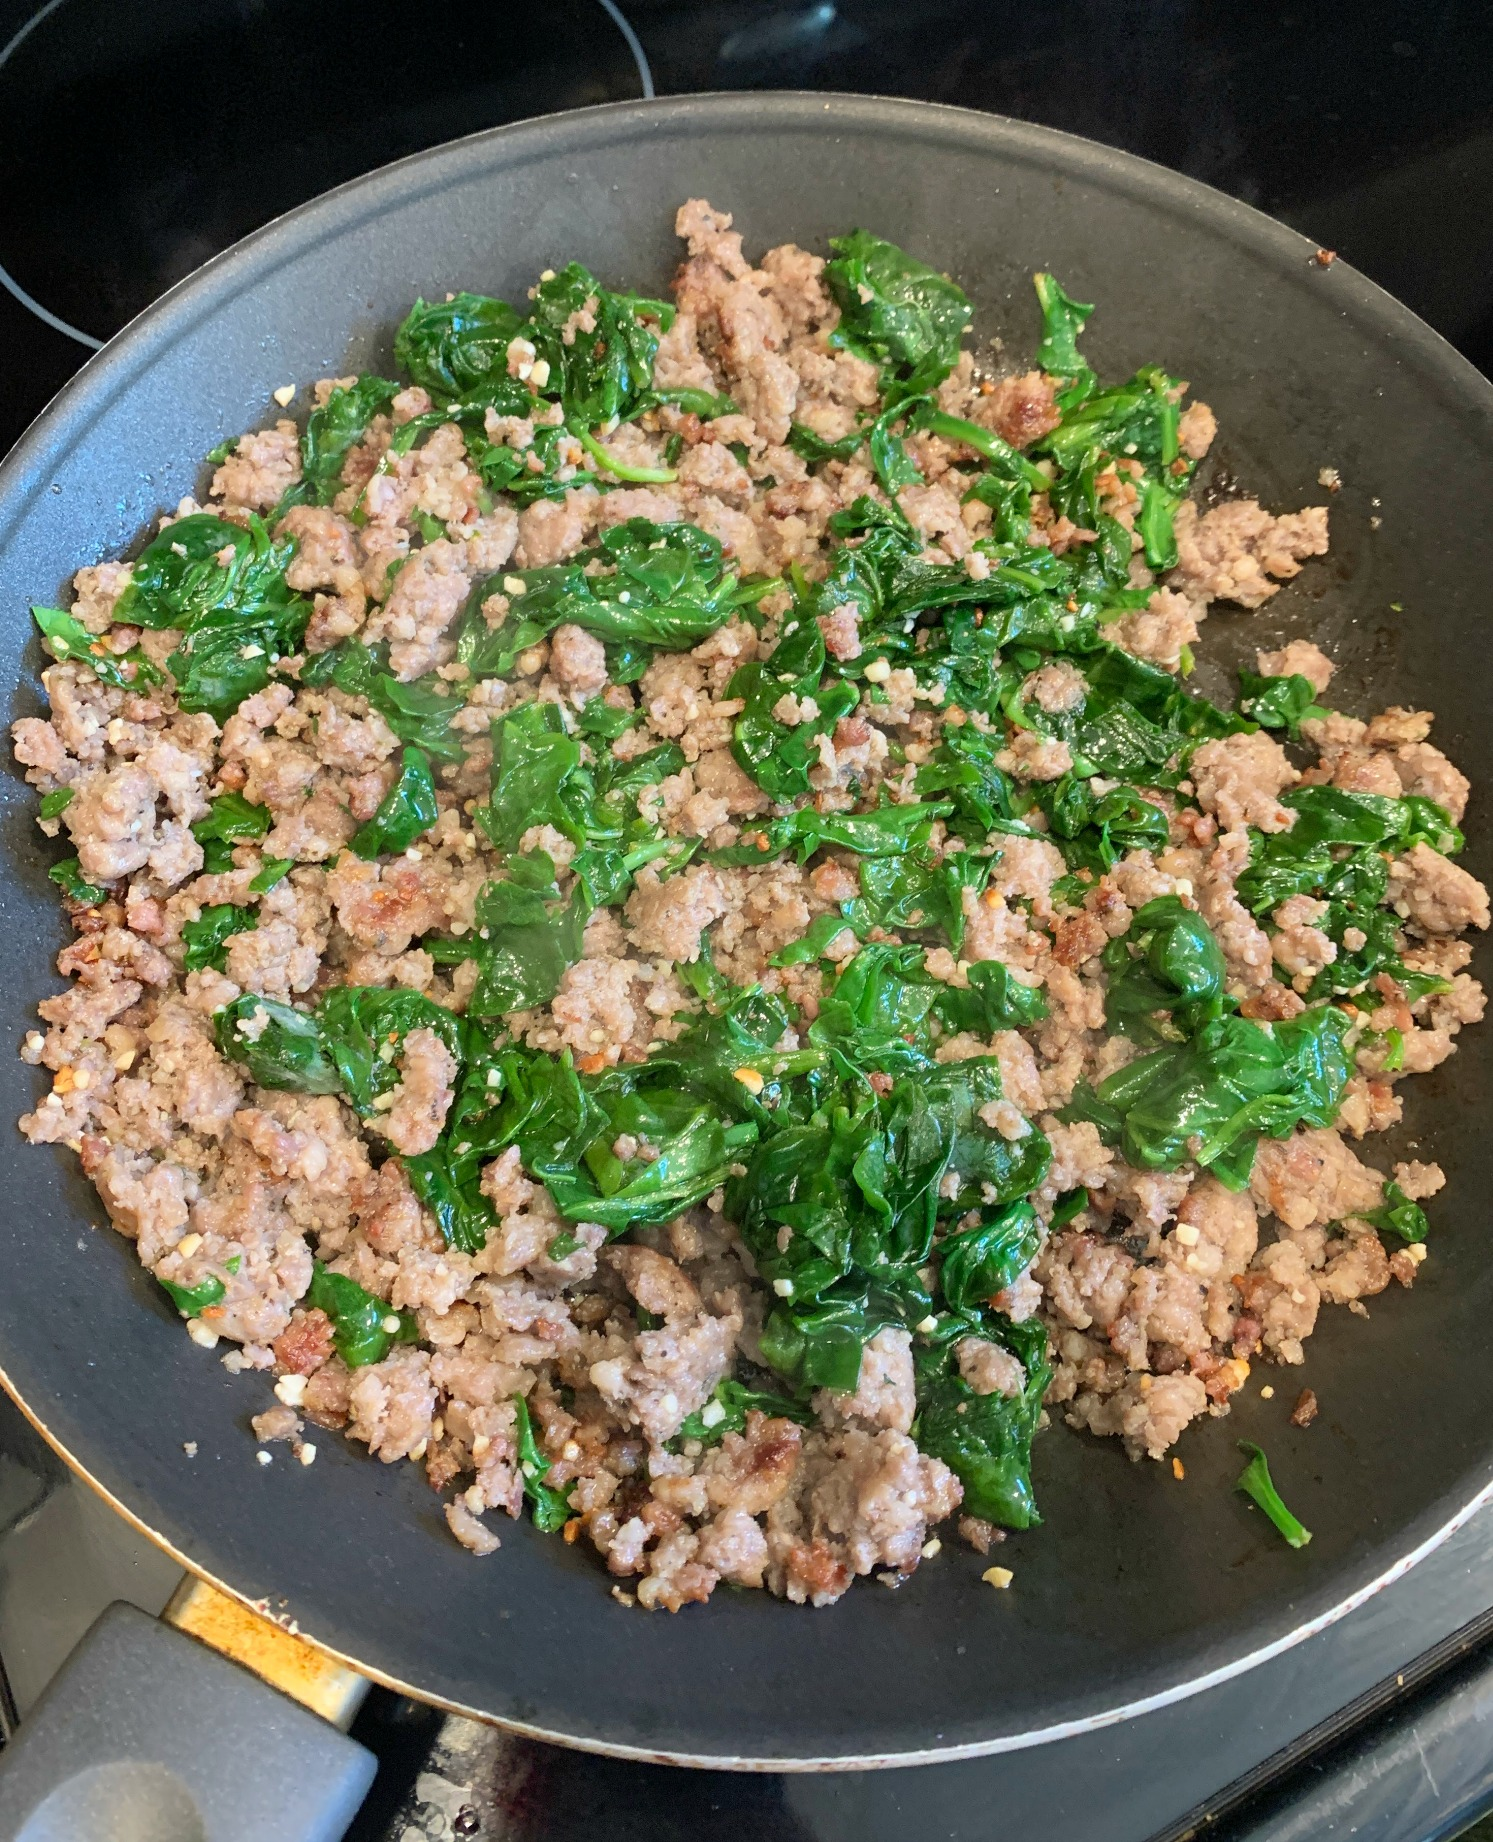 frying pan with cooked ground sausage and wilted spinach